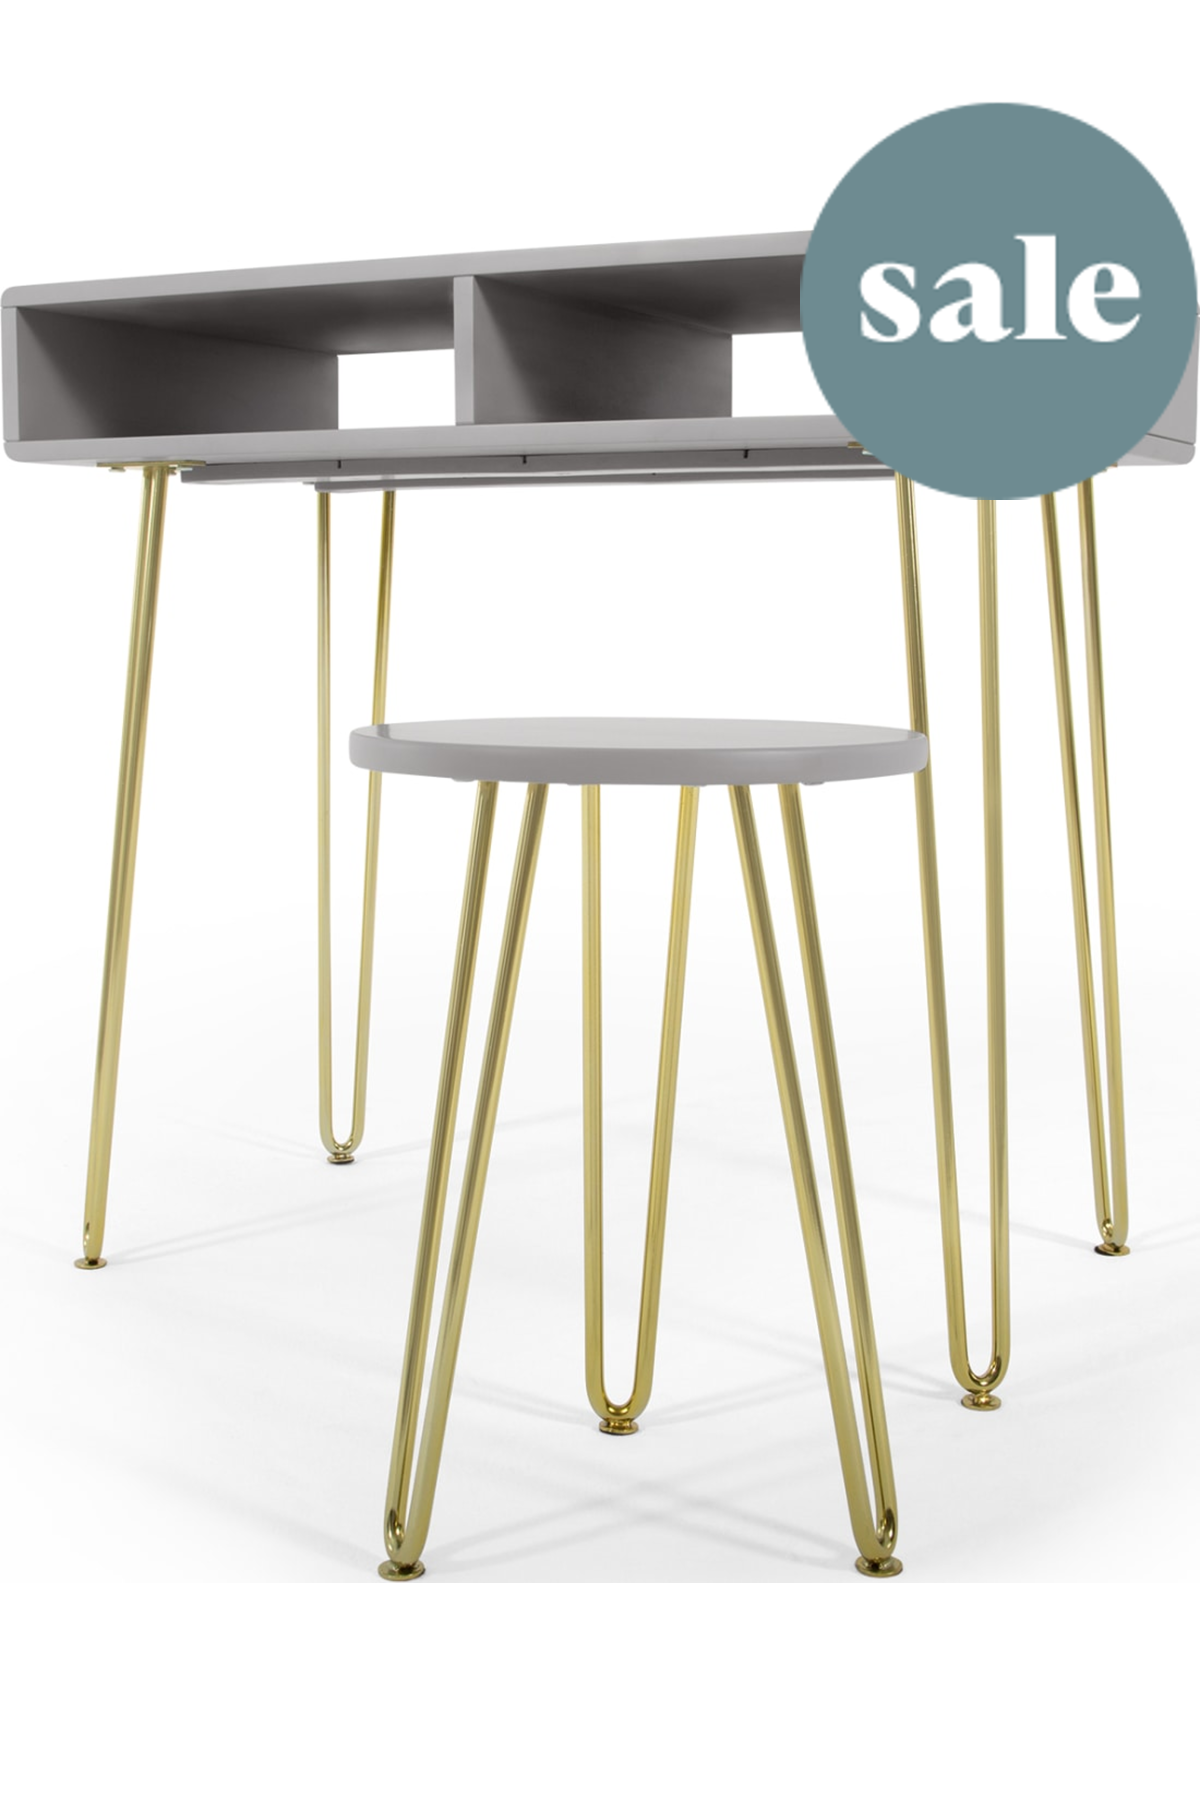 Pair Bed Stools: Cal Desk And Stool Set, Grey And Brass